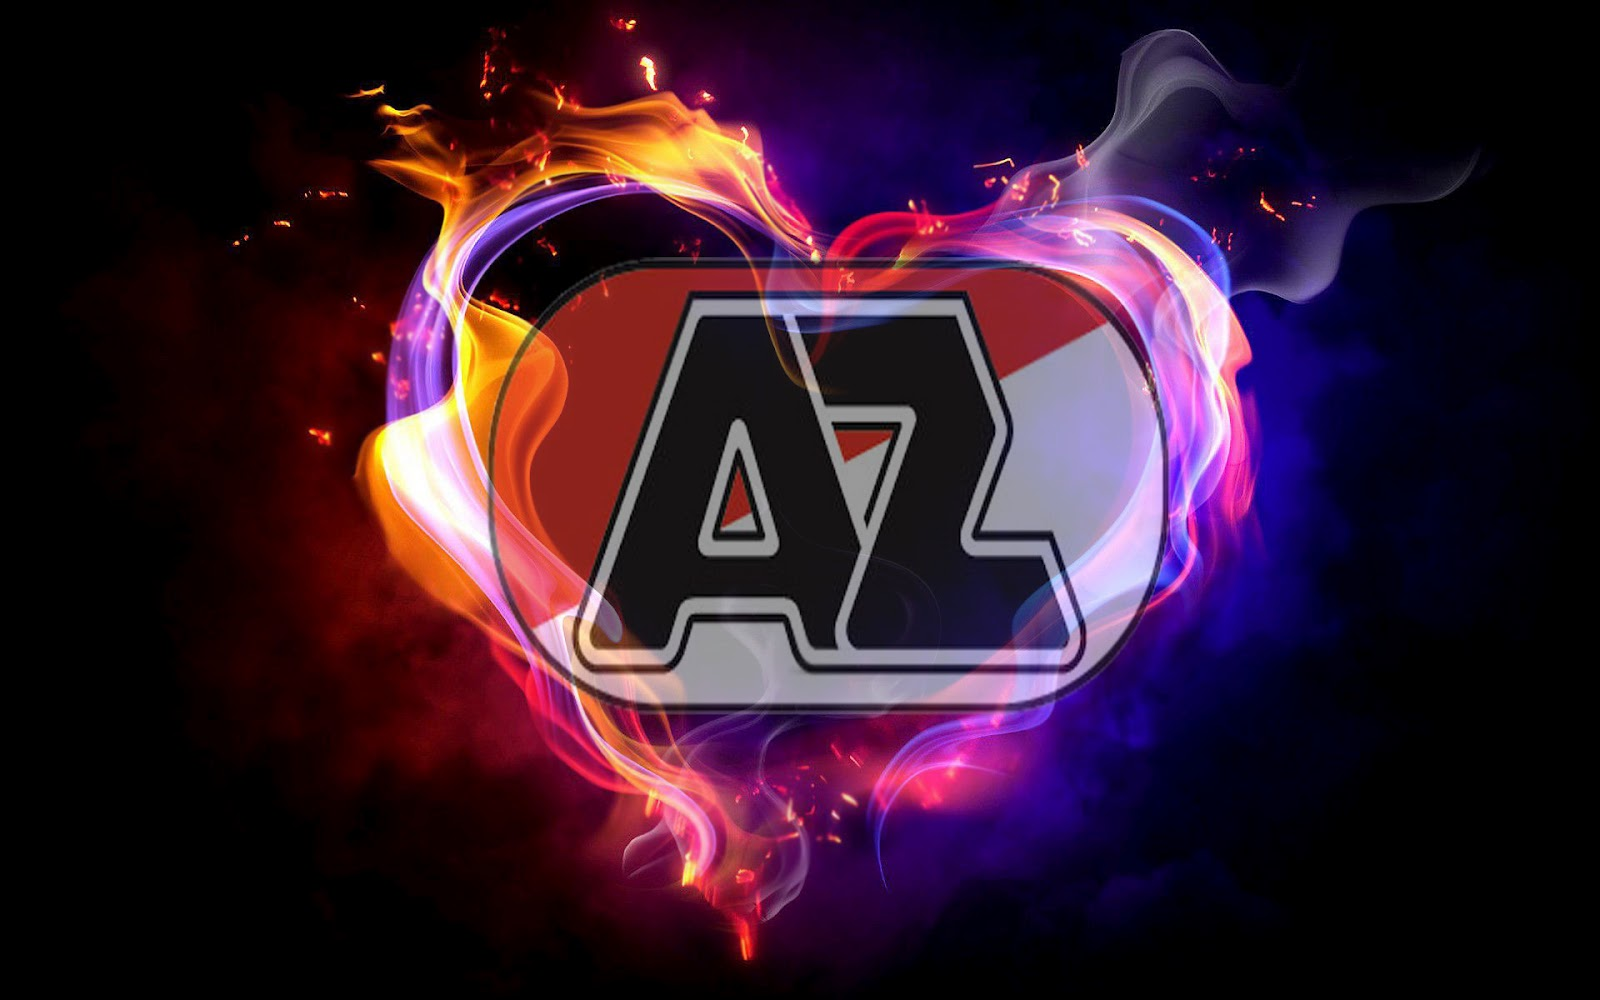 Az Wallpaper Posted By Sarah Anderson